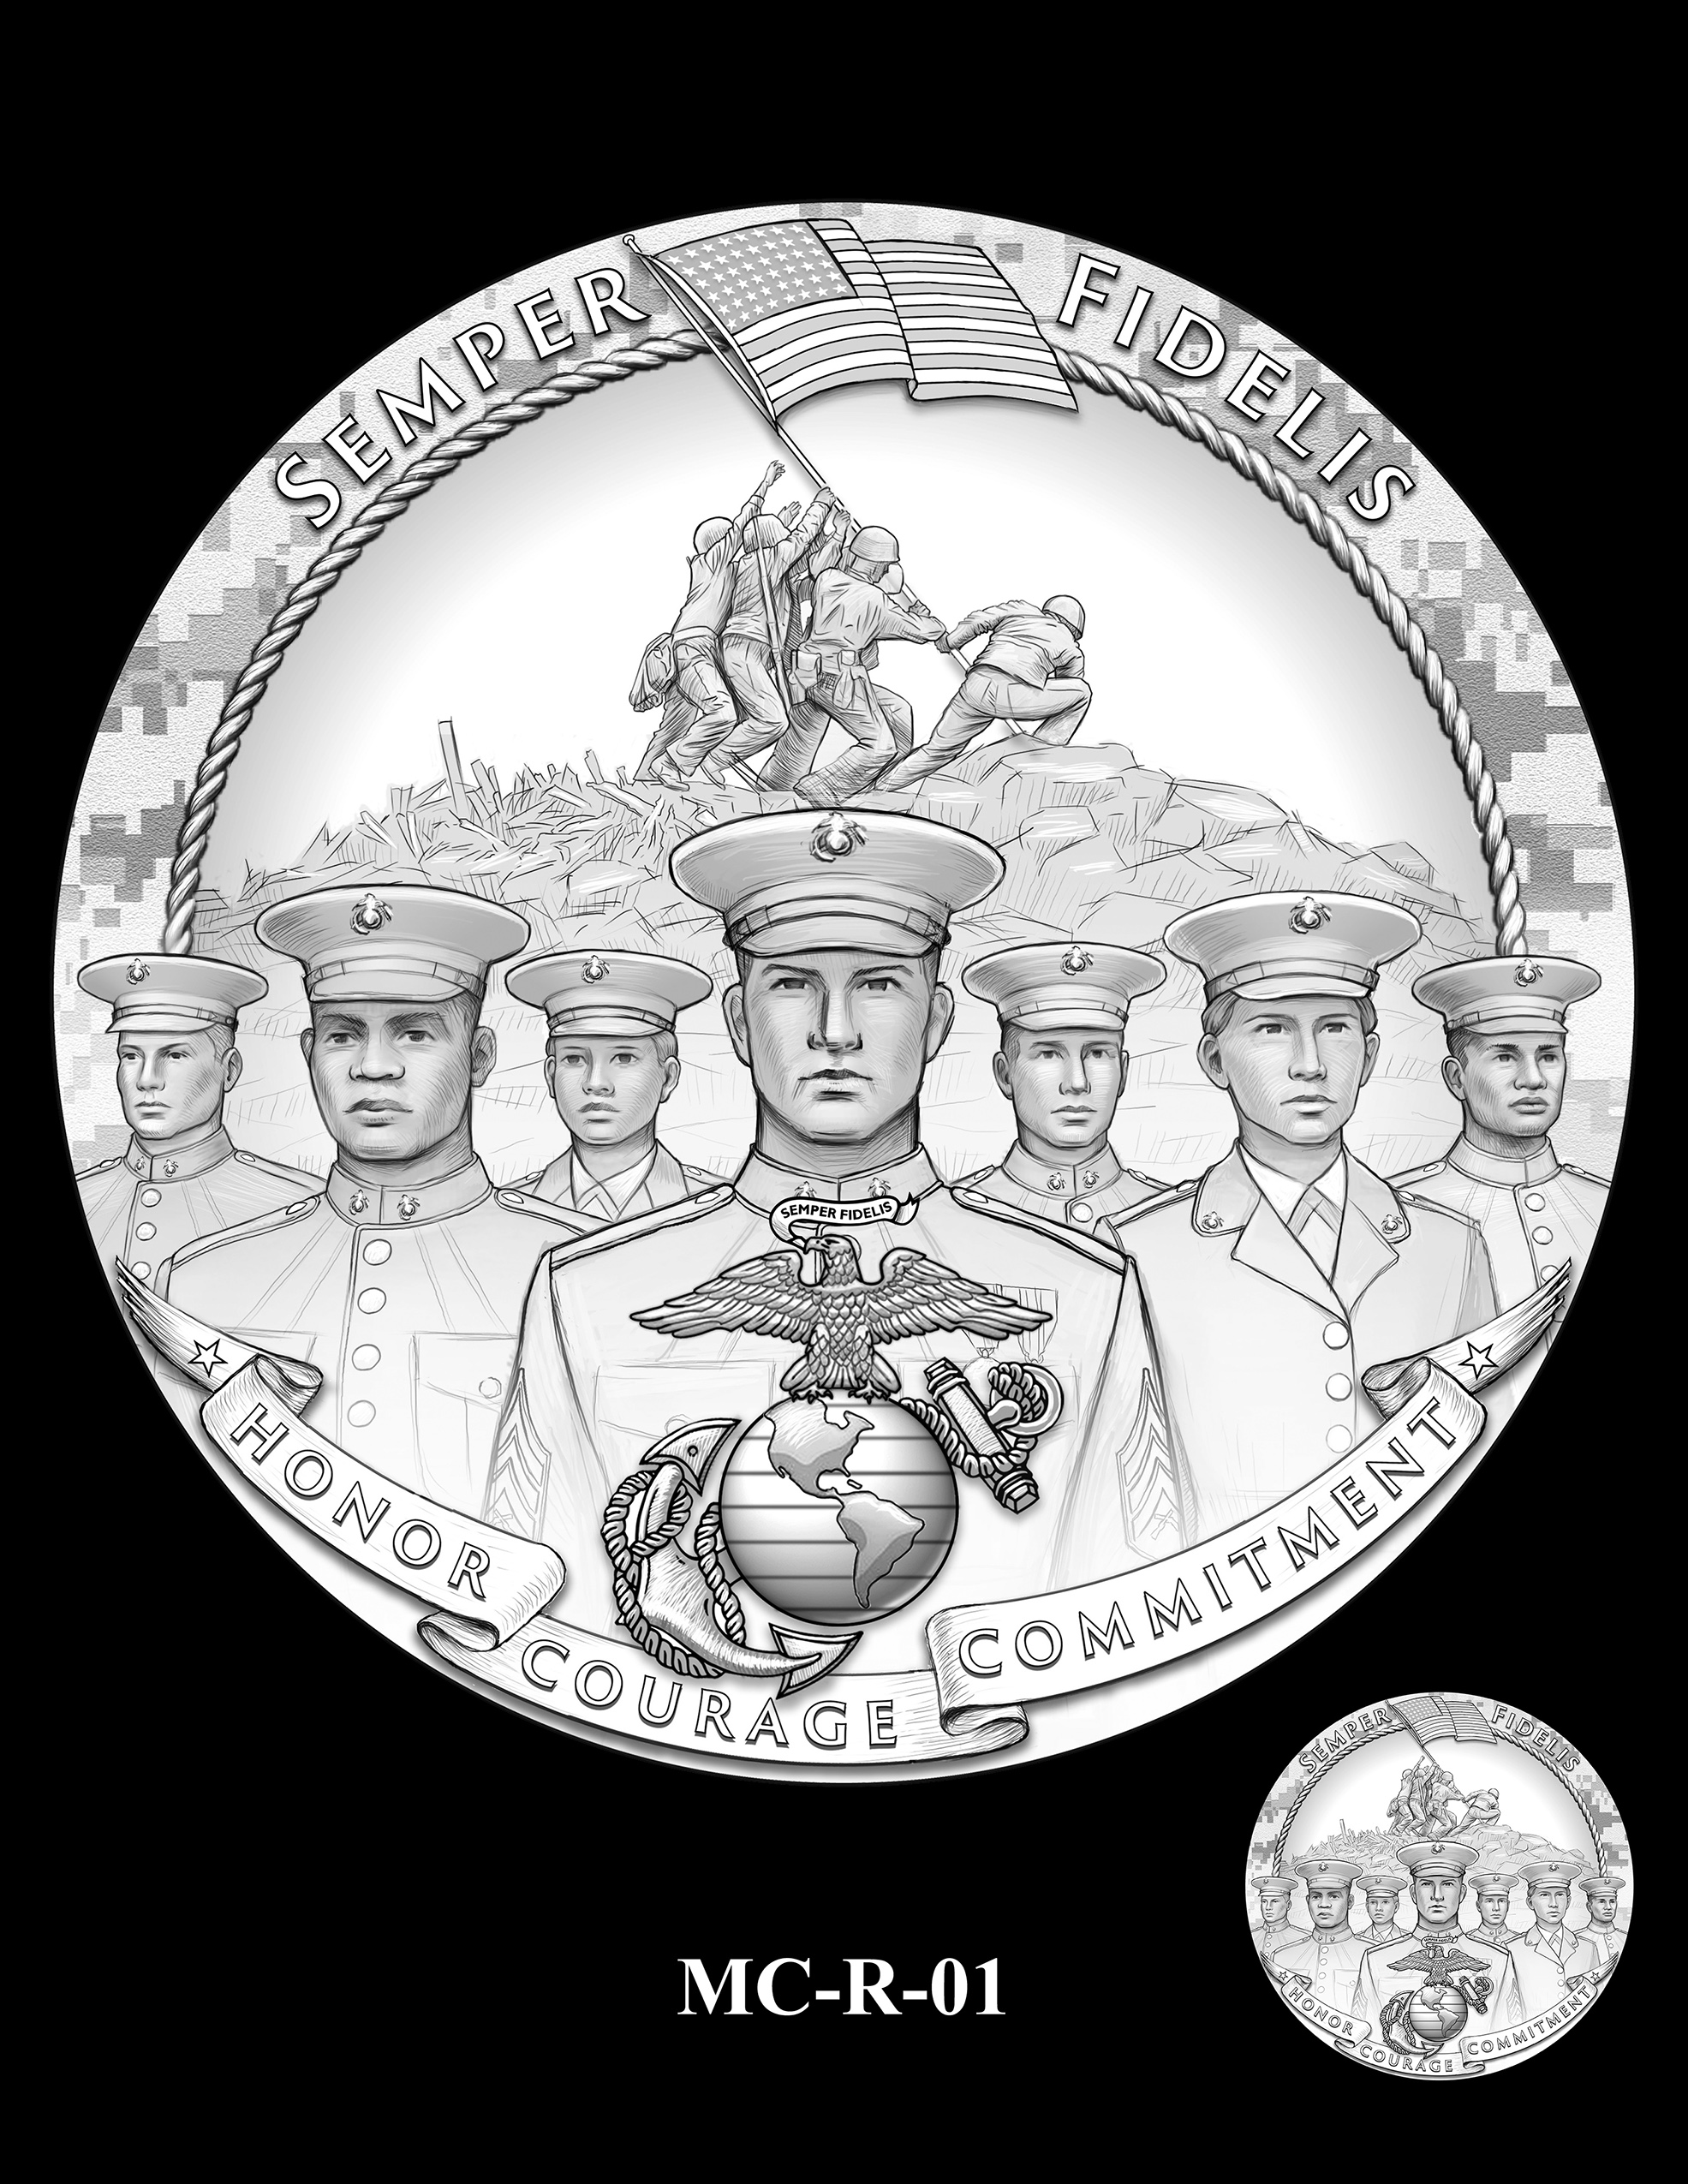 MC-R-01 -- United States Marine Corps Silver Medal